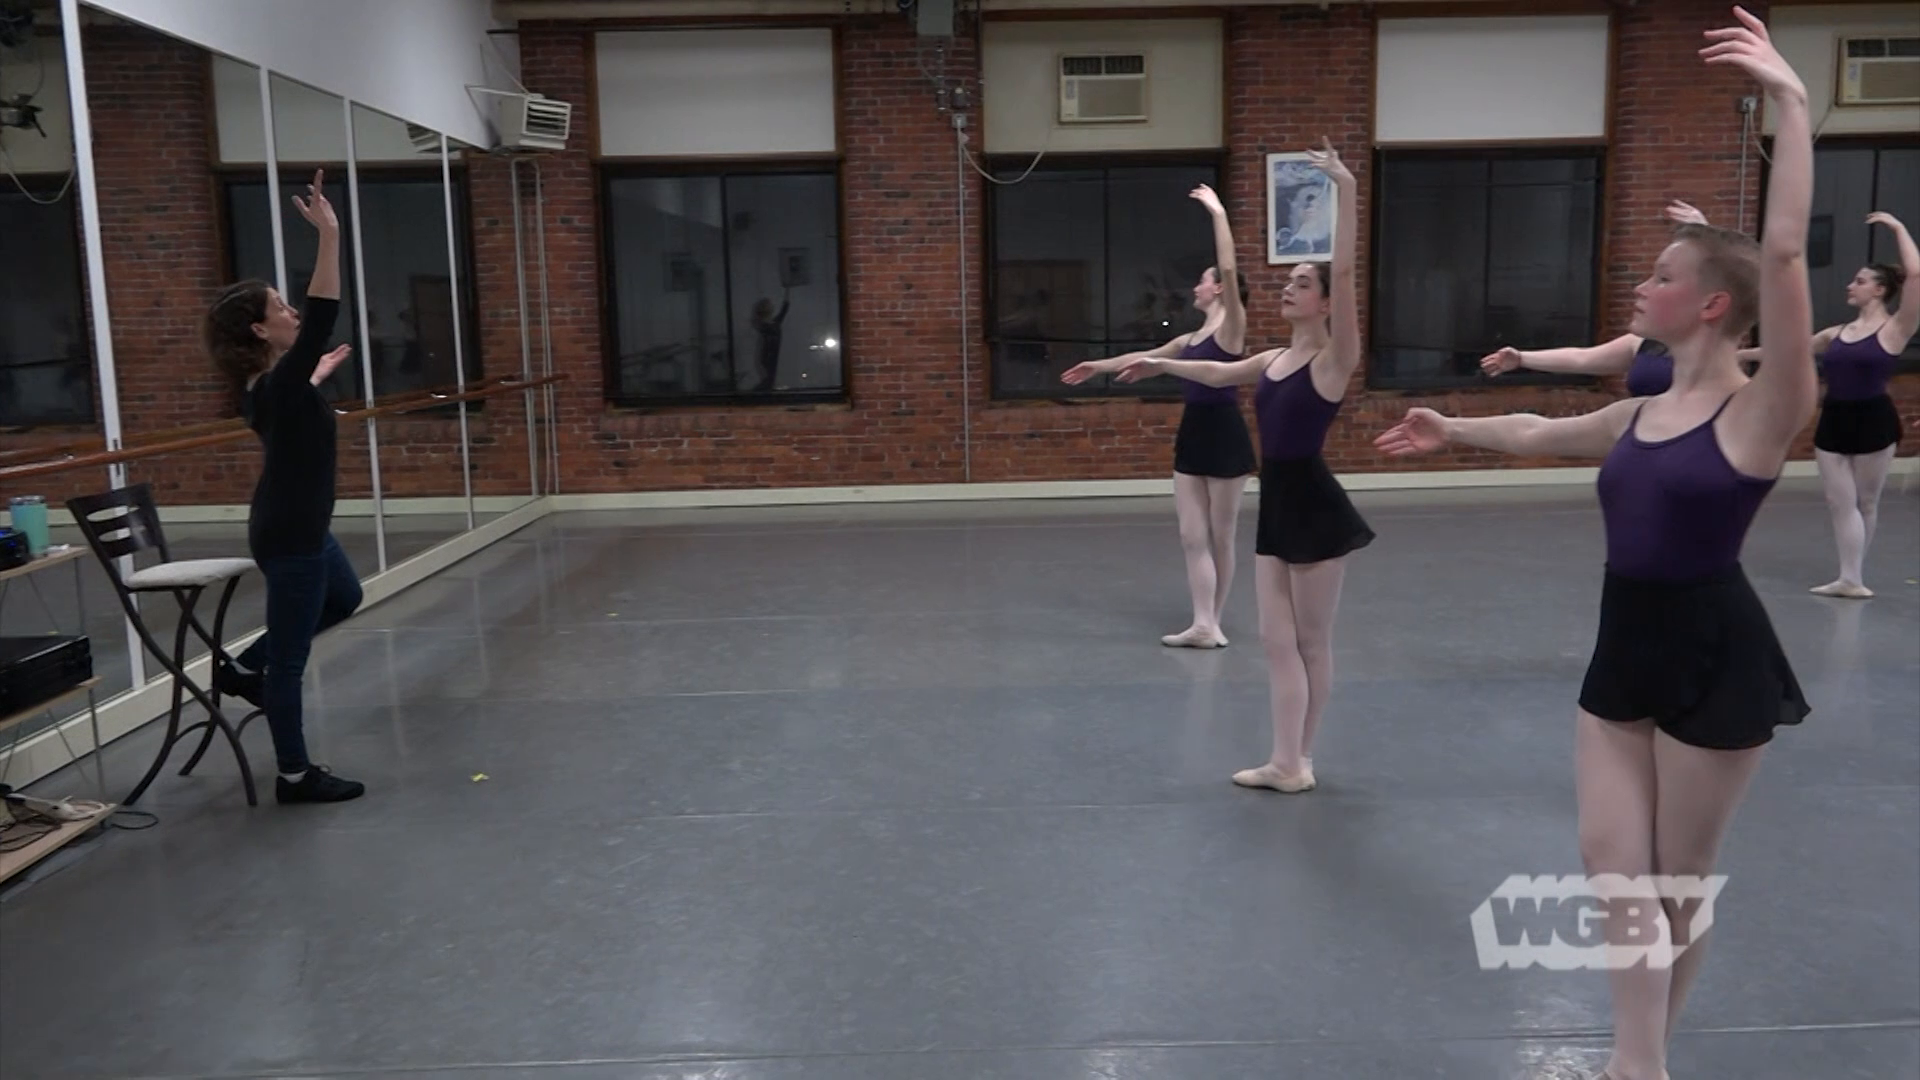 Charles and Rose Flachs are sharing their passion for classical ballet with the next generation of dancers at the Massachusetts Academy of Ballet.